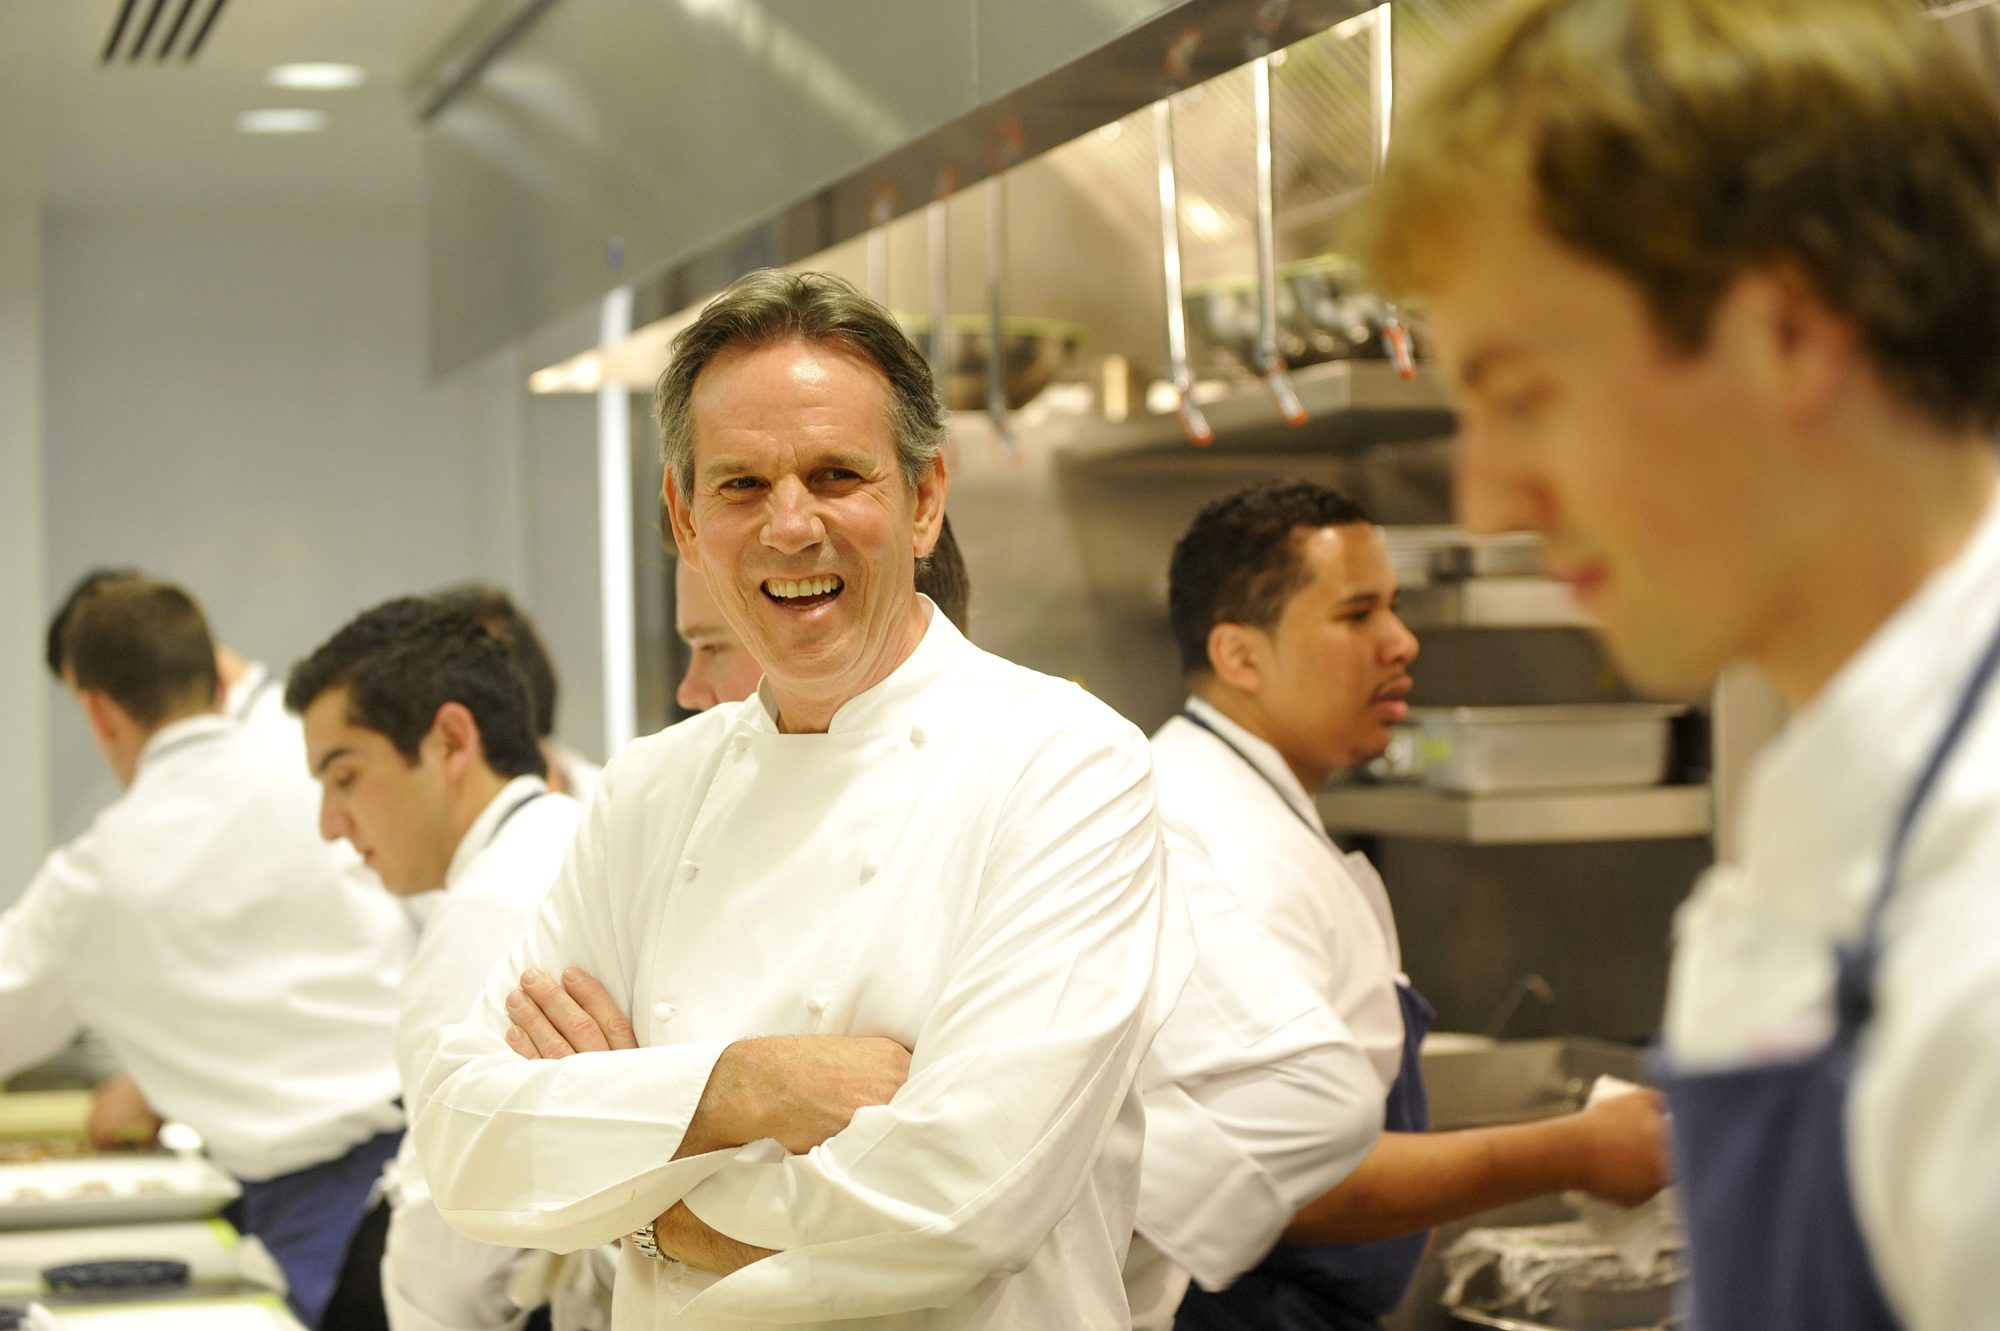 Thomas Keller's First Florida Restaurant Is Open for Business